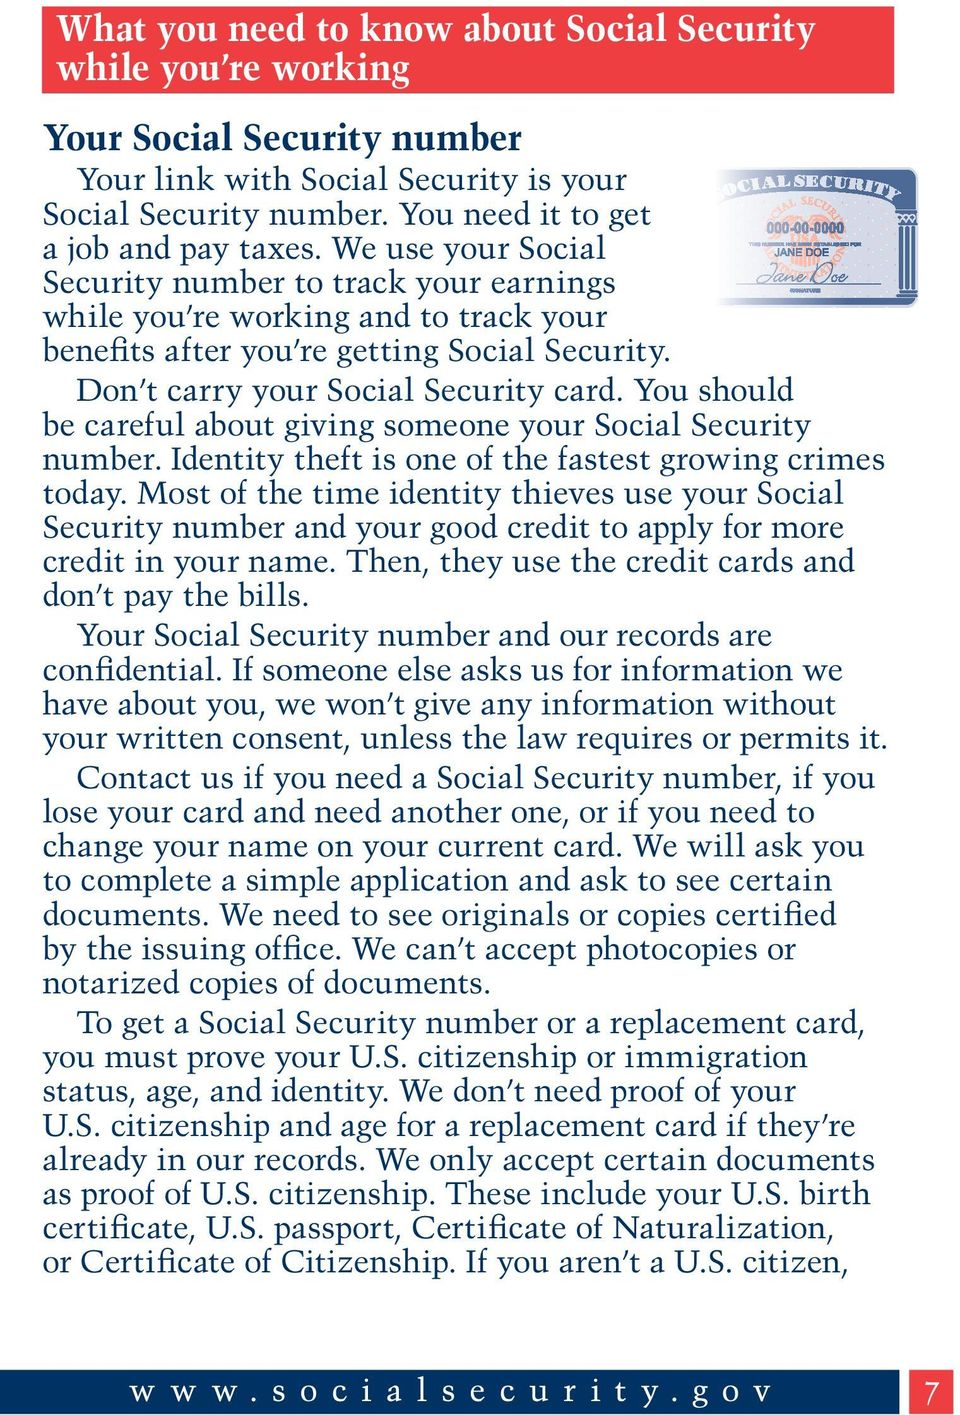 You should be careful about giving someone your Social Security number. Identity theft is one of the fastest growing crimes today.